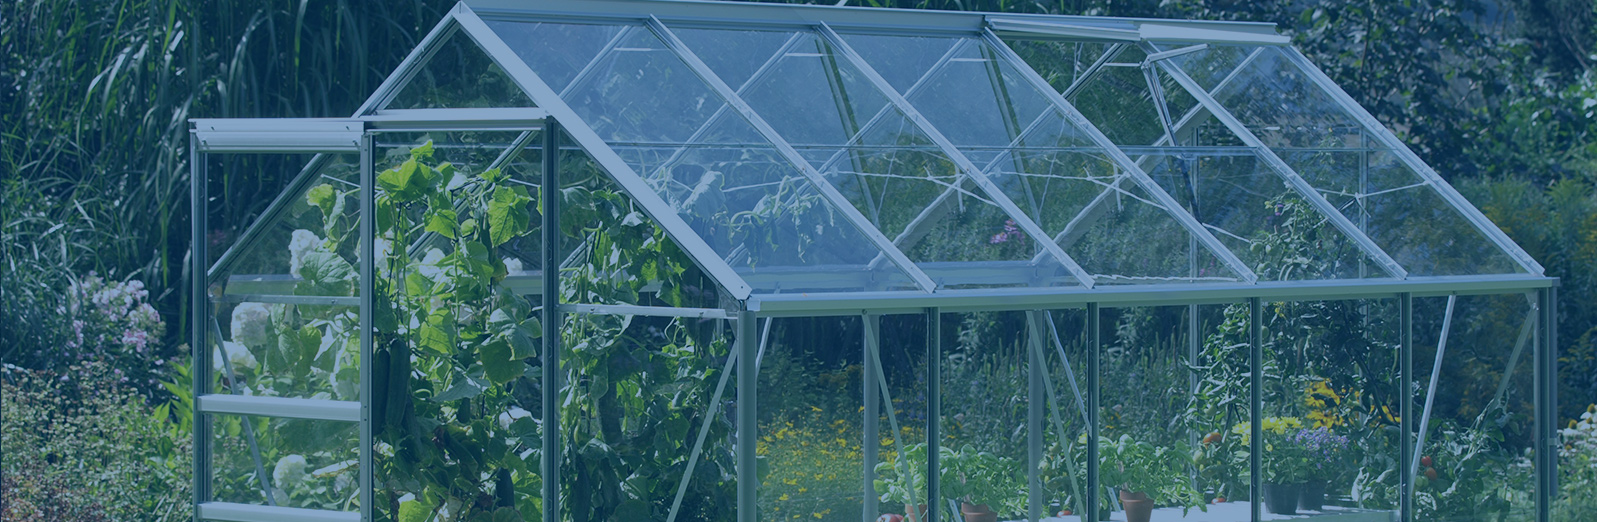 greenhouse-banner